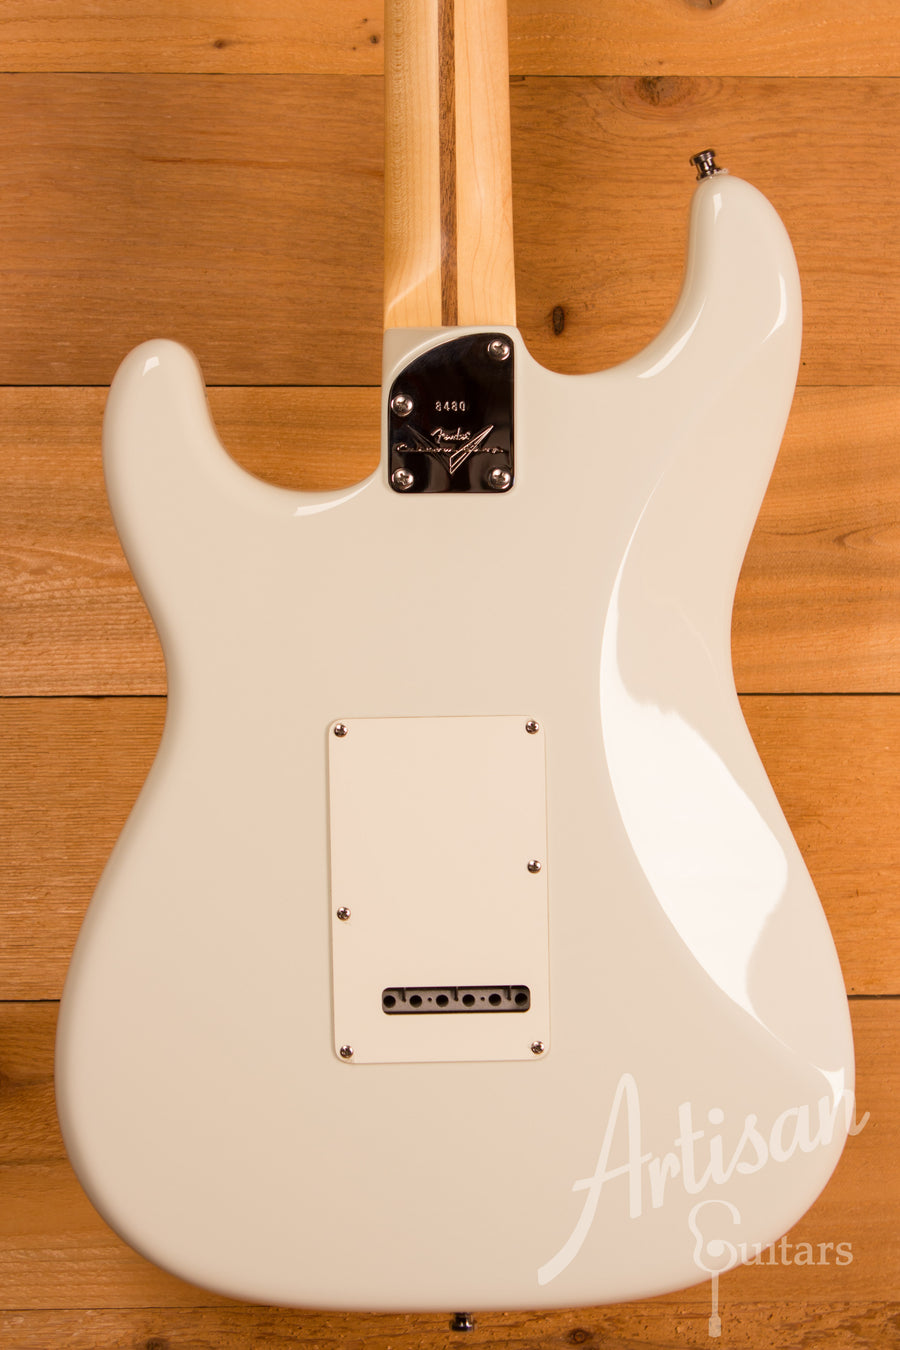 Fender Custom Shop Jeff Beck Stratocaster Olympic White Finish Pre-Owned 2012 ID-11248 - Artisan Guitars